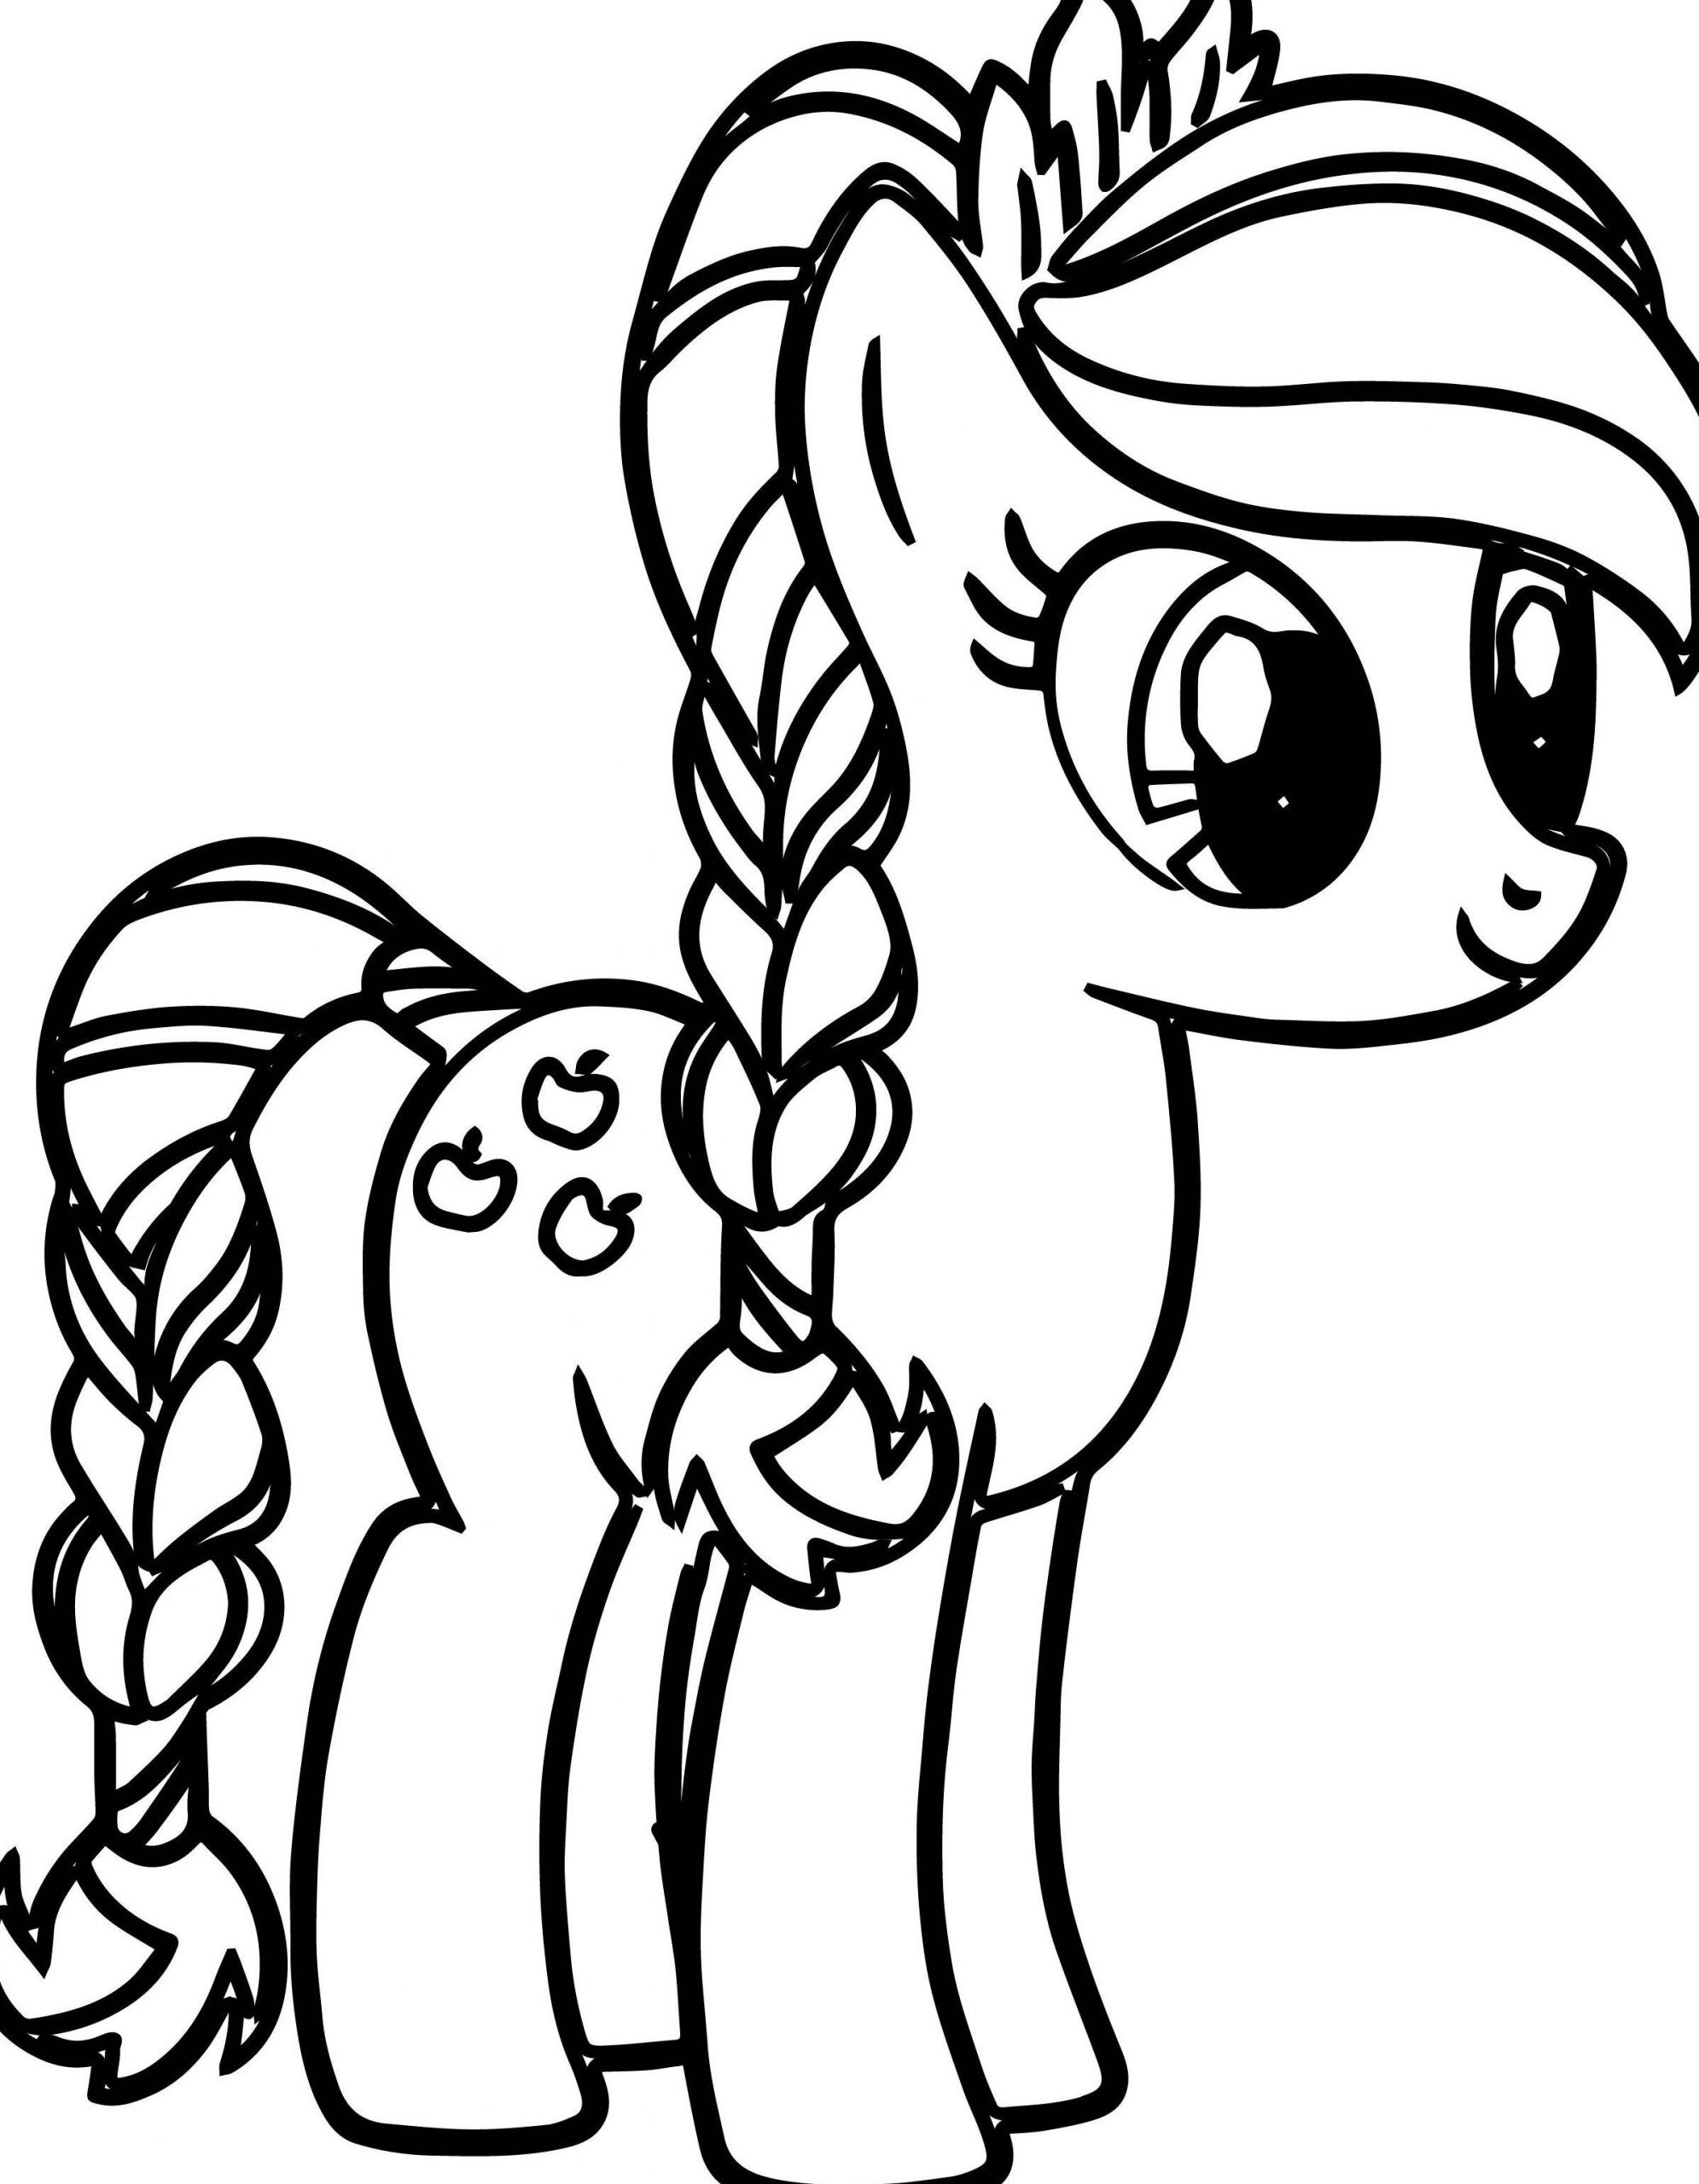 my little pony coloring printables new cute my little pony coloring pages new coloring pages printables pony little coloring my